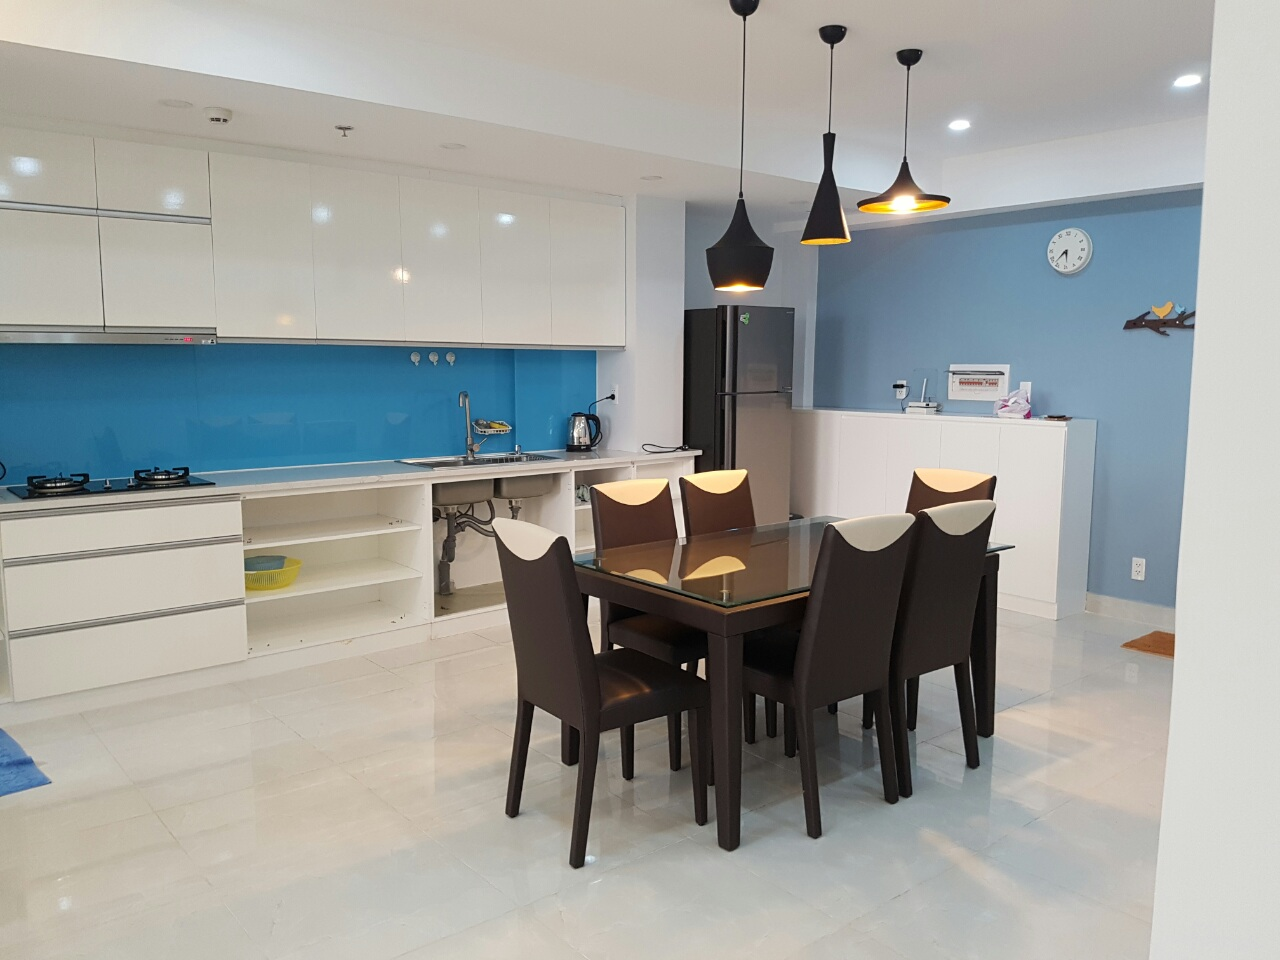 Modern Apartment for rent in Tropic Garden, River view, $900